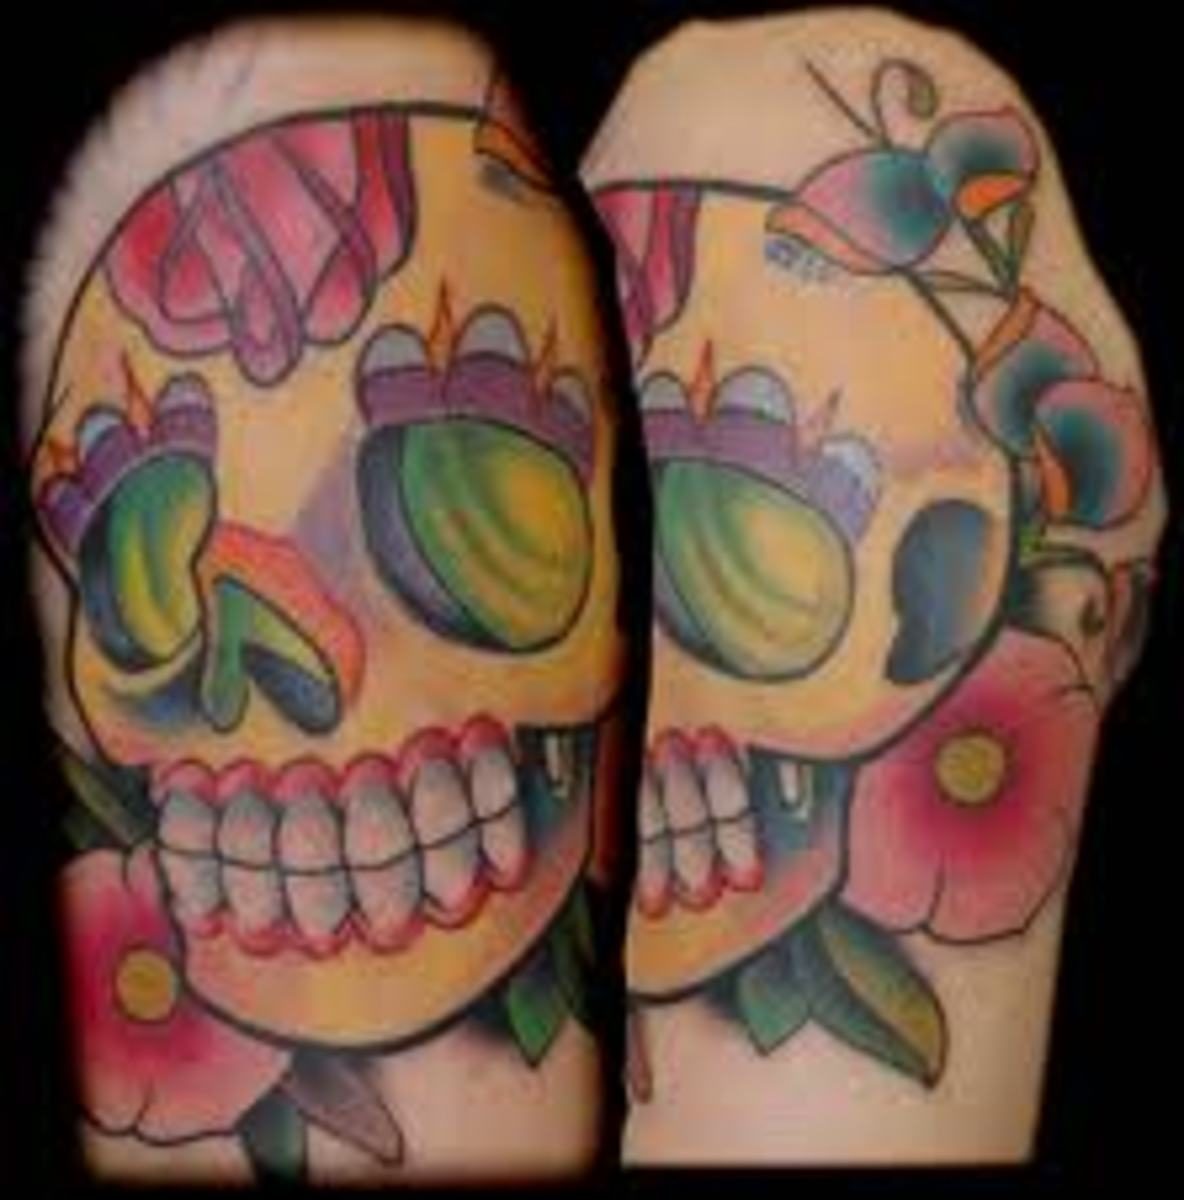 sugar skull tattoos and designs sugar skull tattoo meanings and ideas sugar skull tattoo. Black Bedroom Furniture Sets. Home Design Ideas